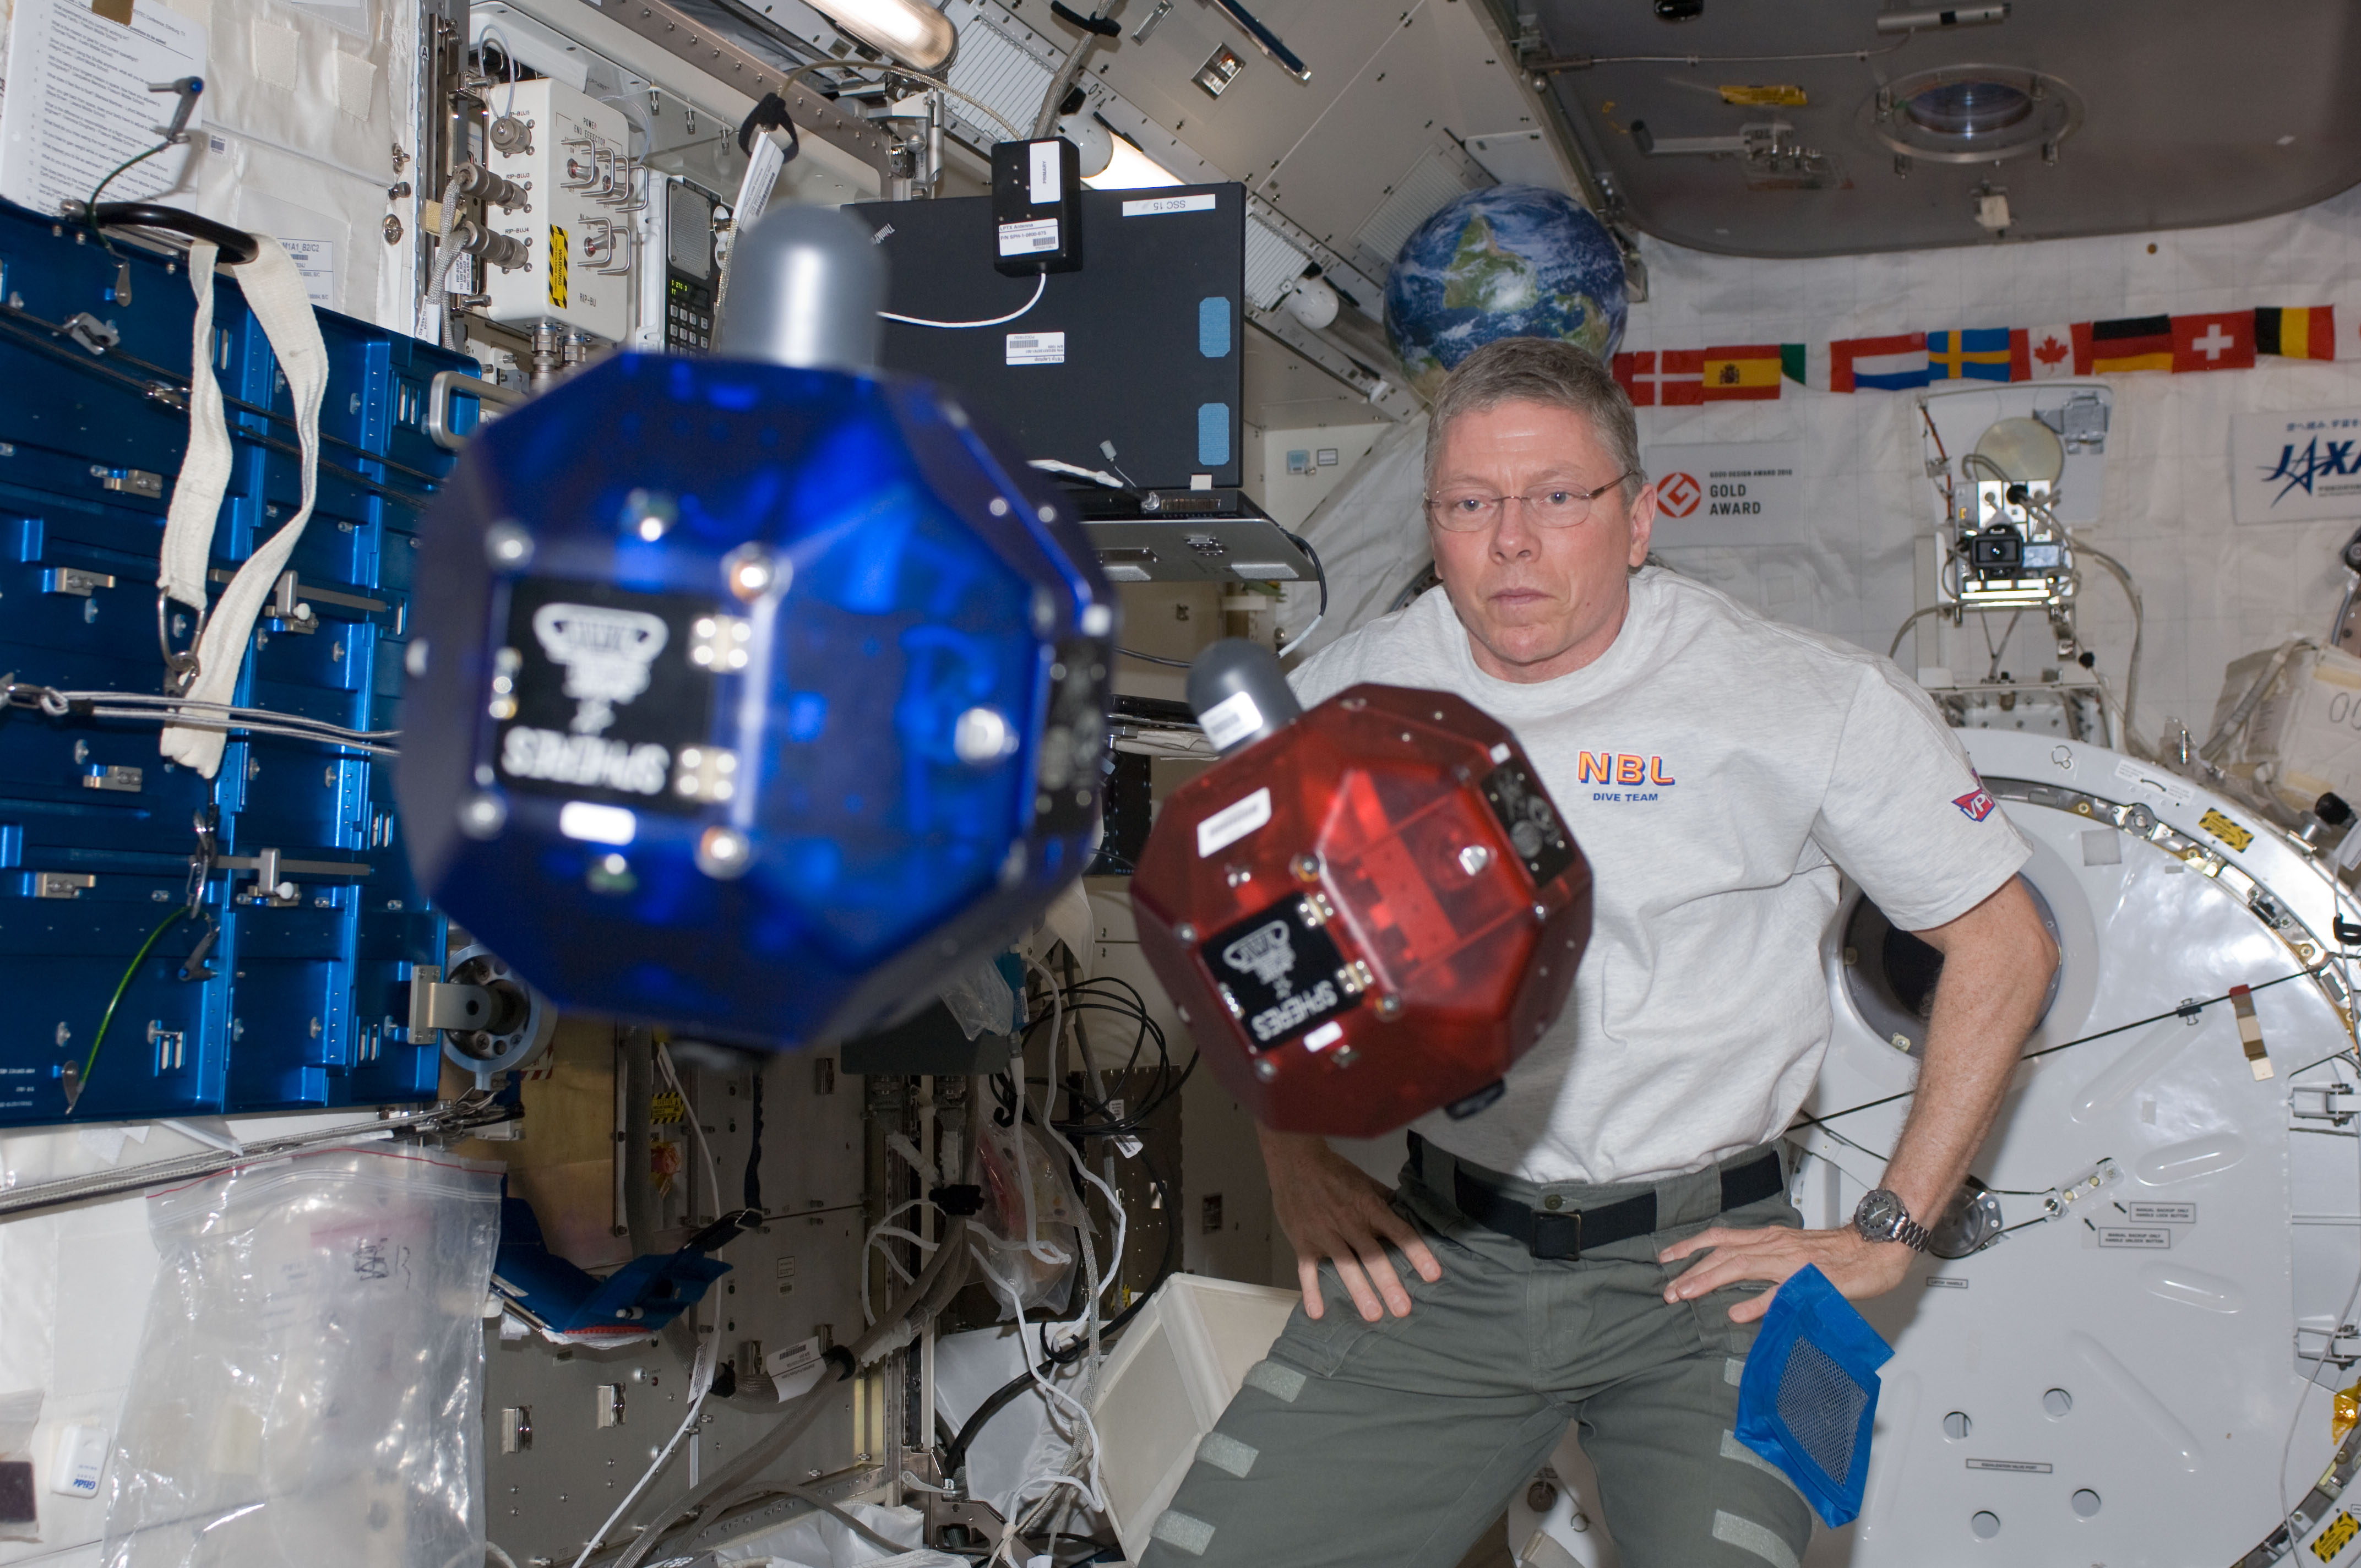 Mike Fossum with Floating SPHERES